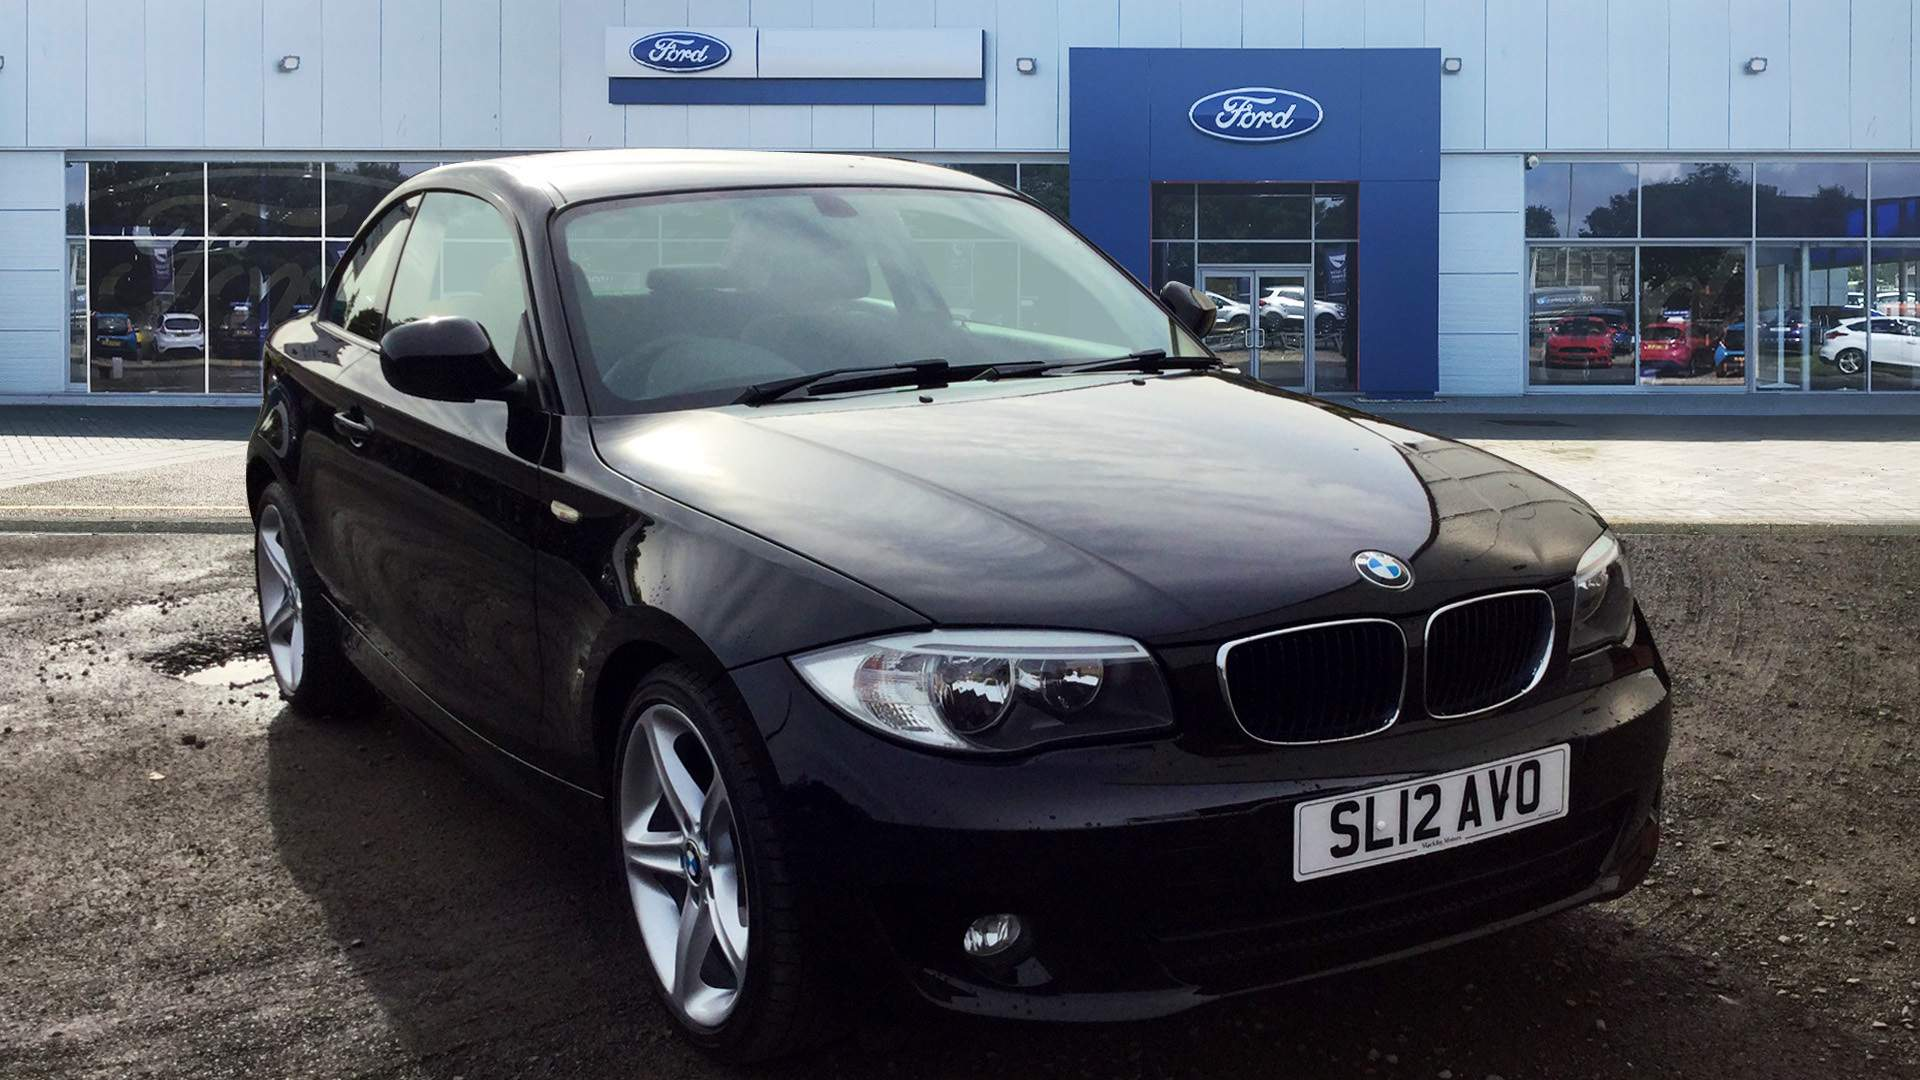 Car for Sale Scotland Best Of Used Cars Scotland Find Cars for Sale In Scotland at Motors